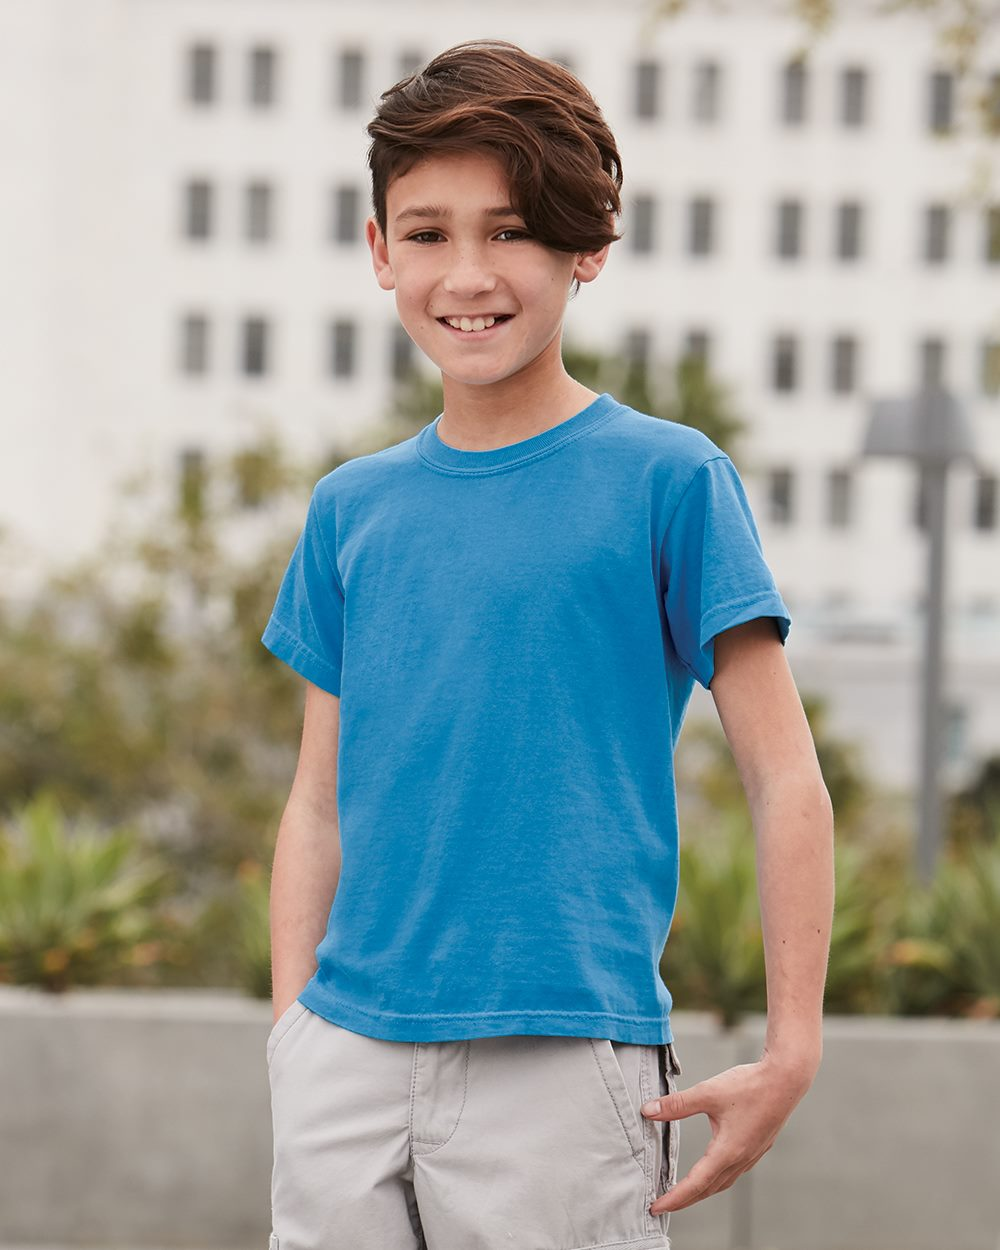 ad3ab60d Comfort Colors 9018 - Youth Pigment-Dyed Ringspun T-Shirt $5.35 ...